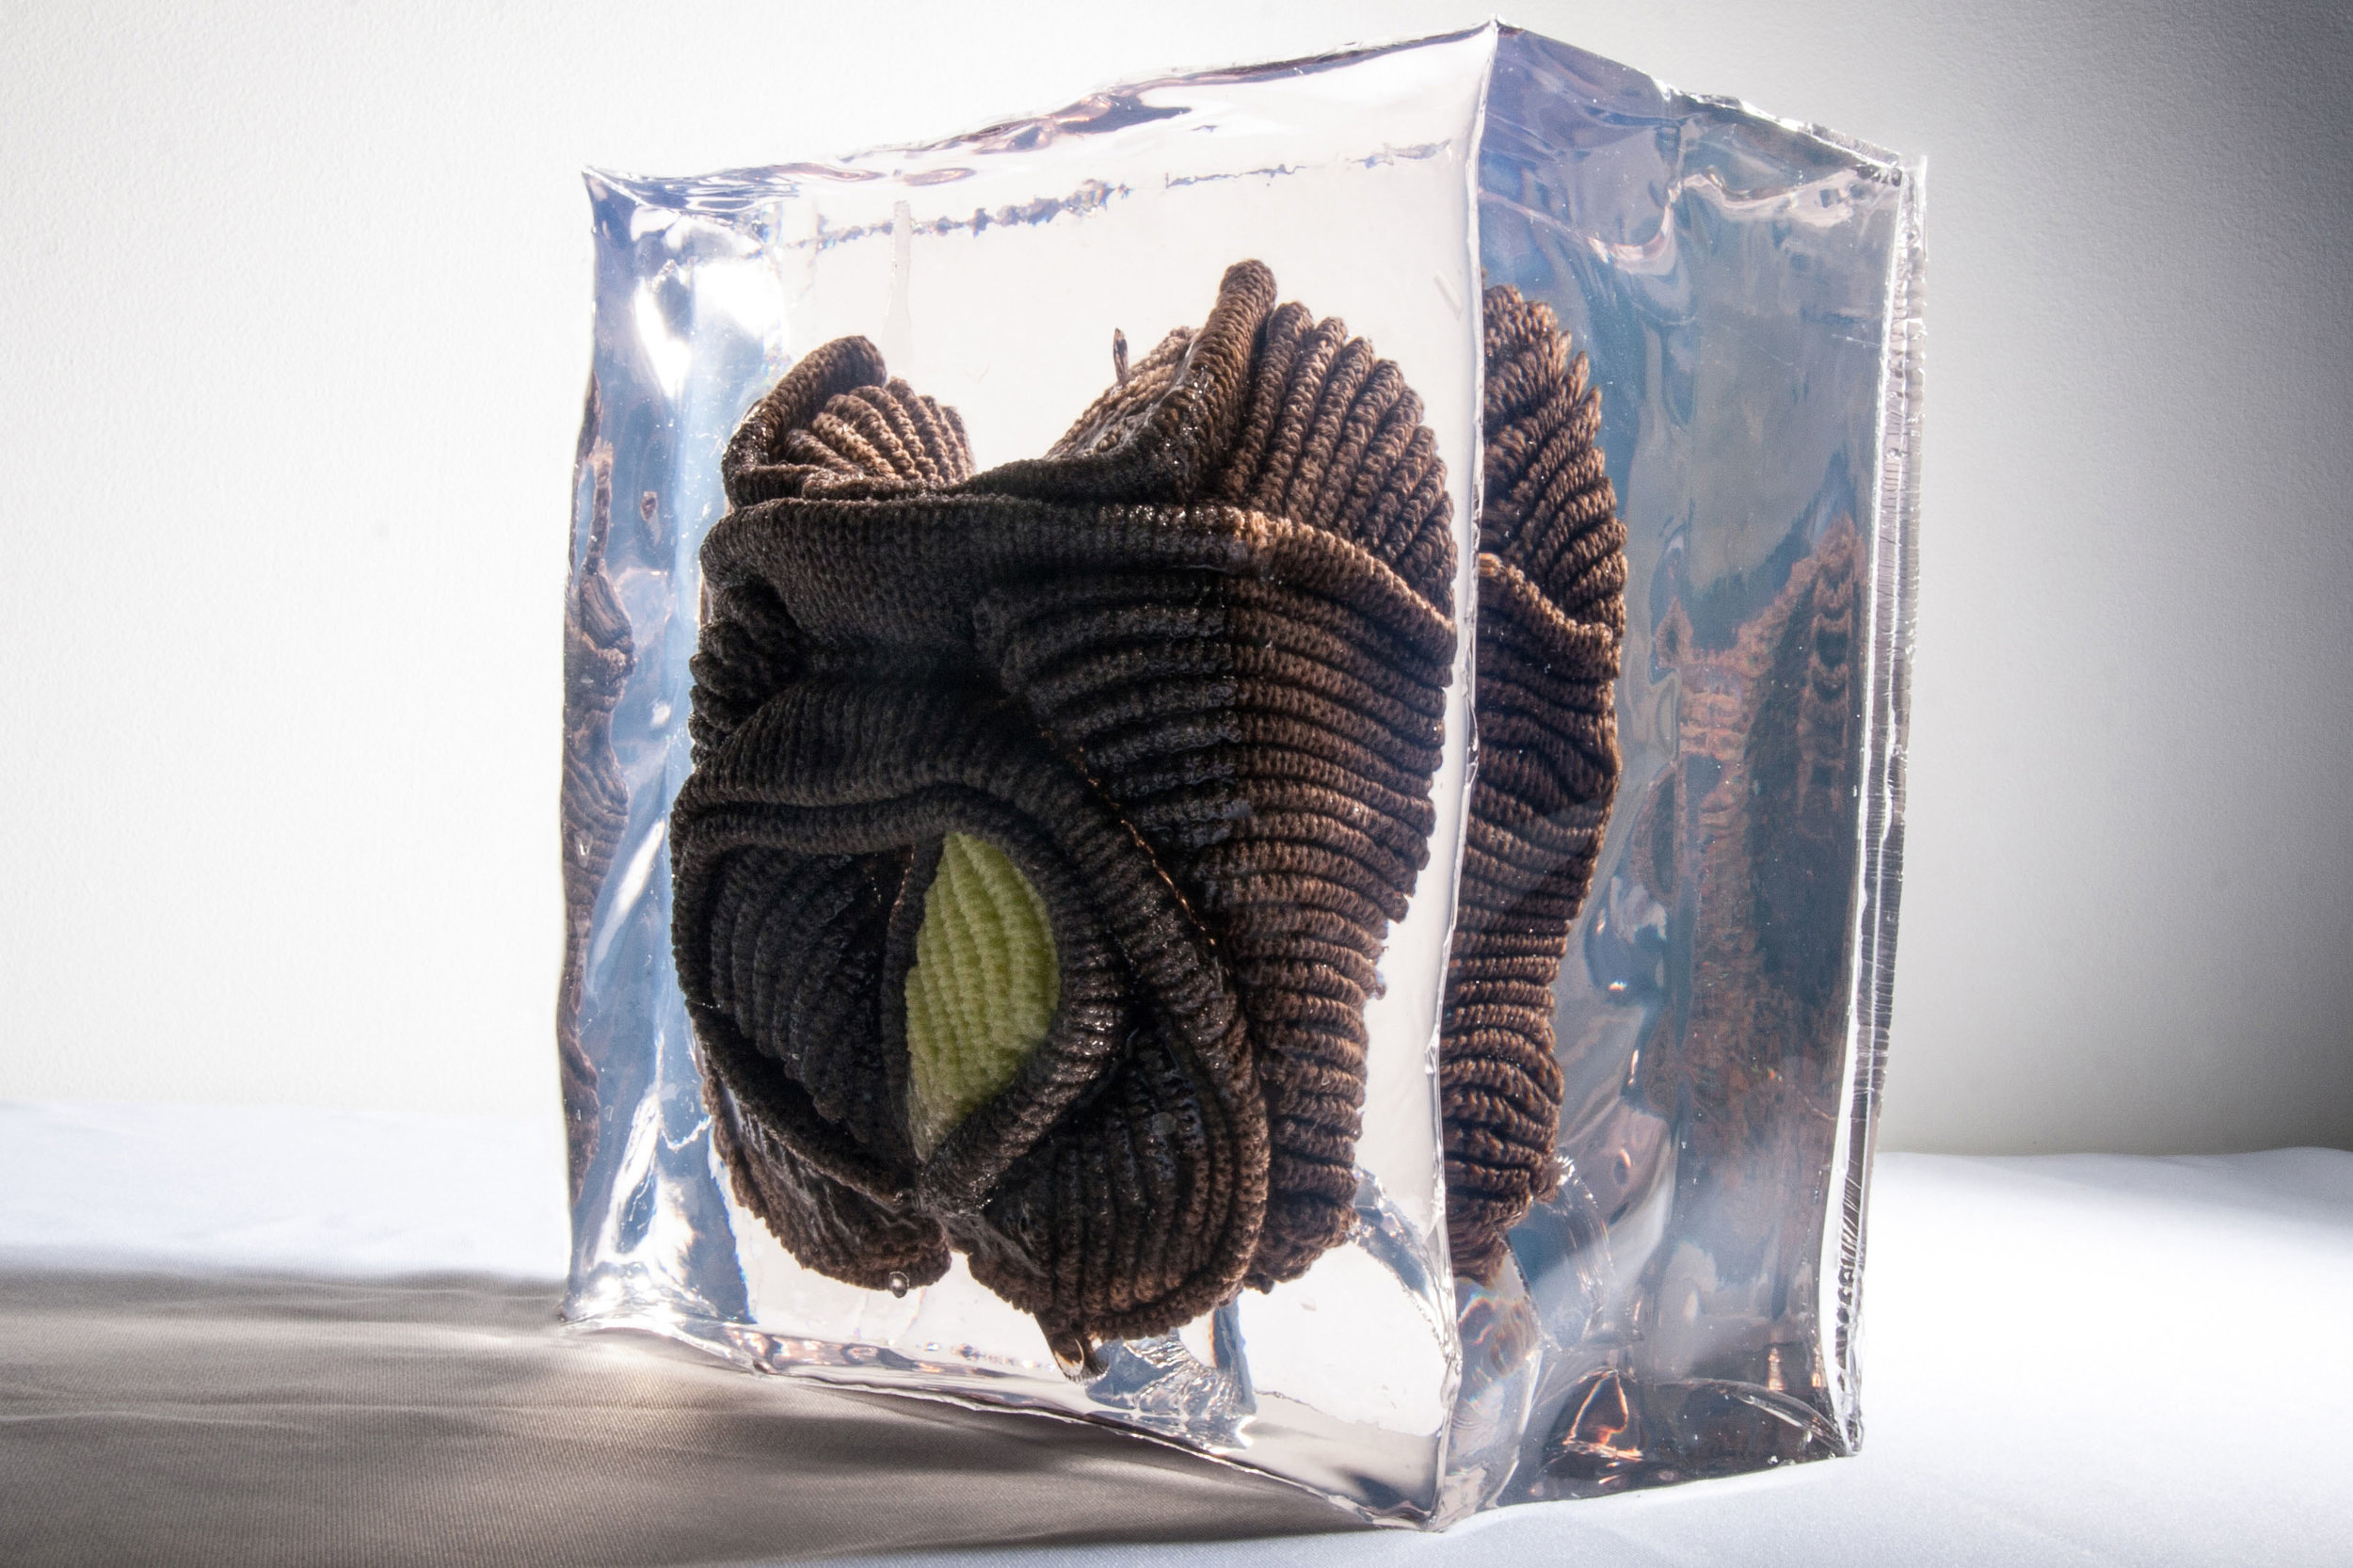 Heel Ache, 2017, Cotton knit and resin, 7.9 x 7.9 x 6.7 inches, $3500